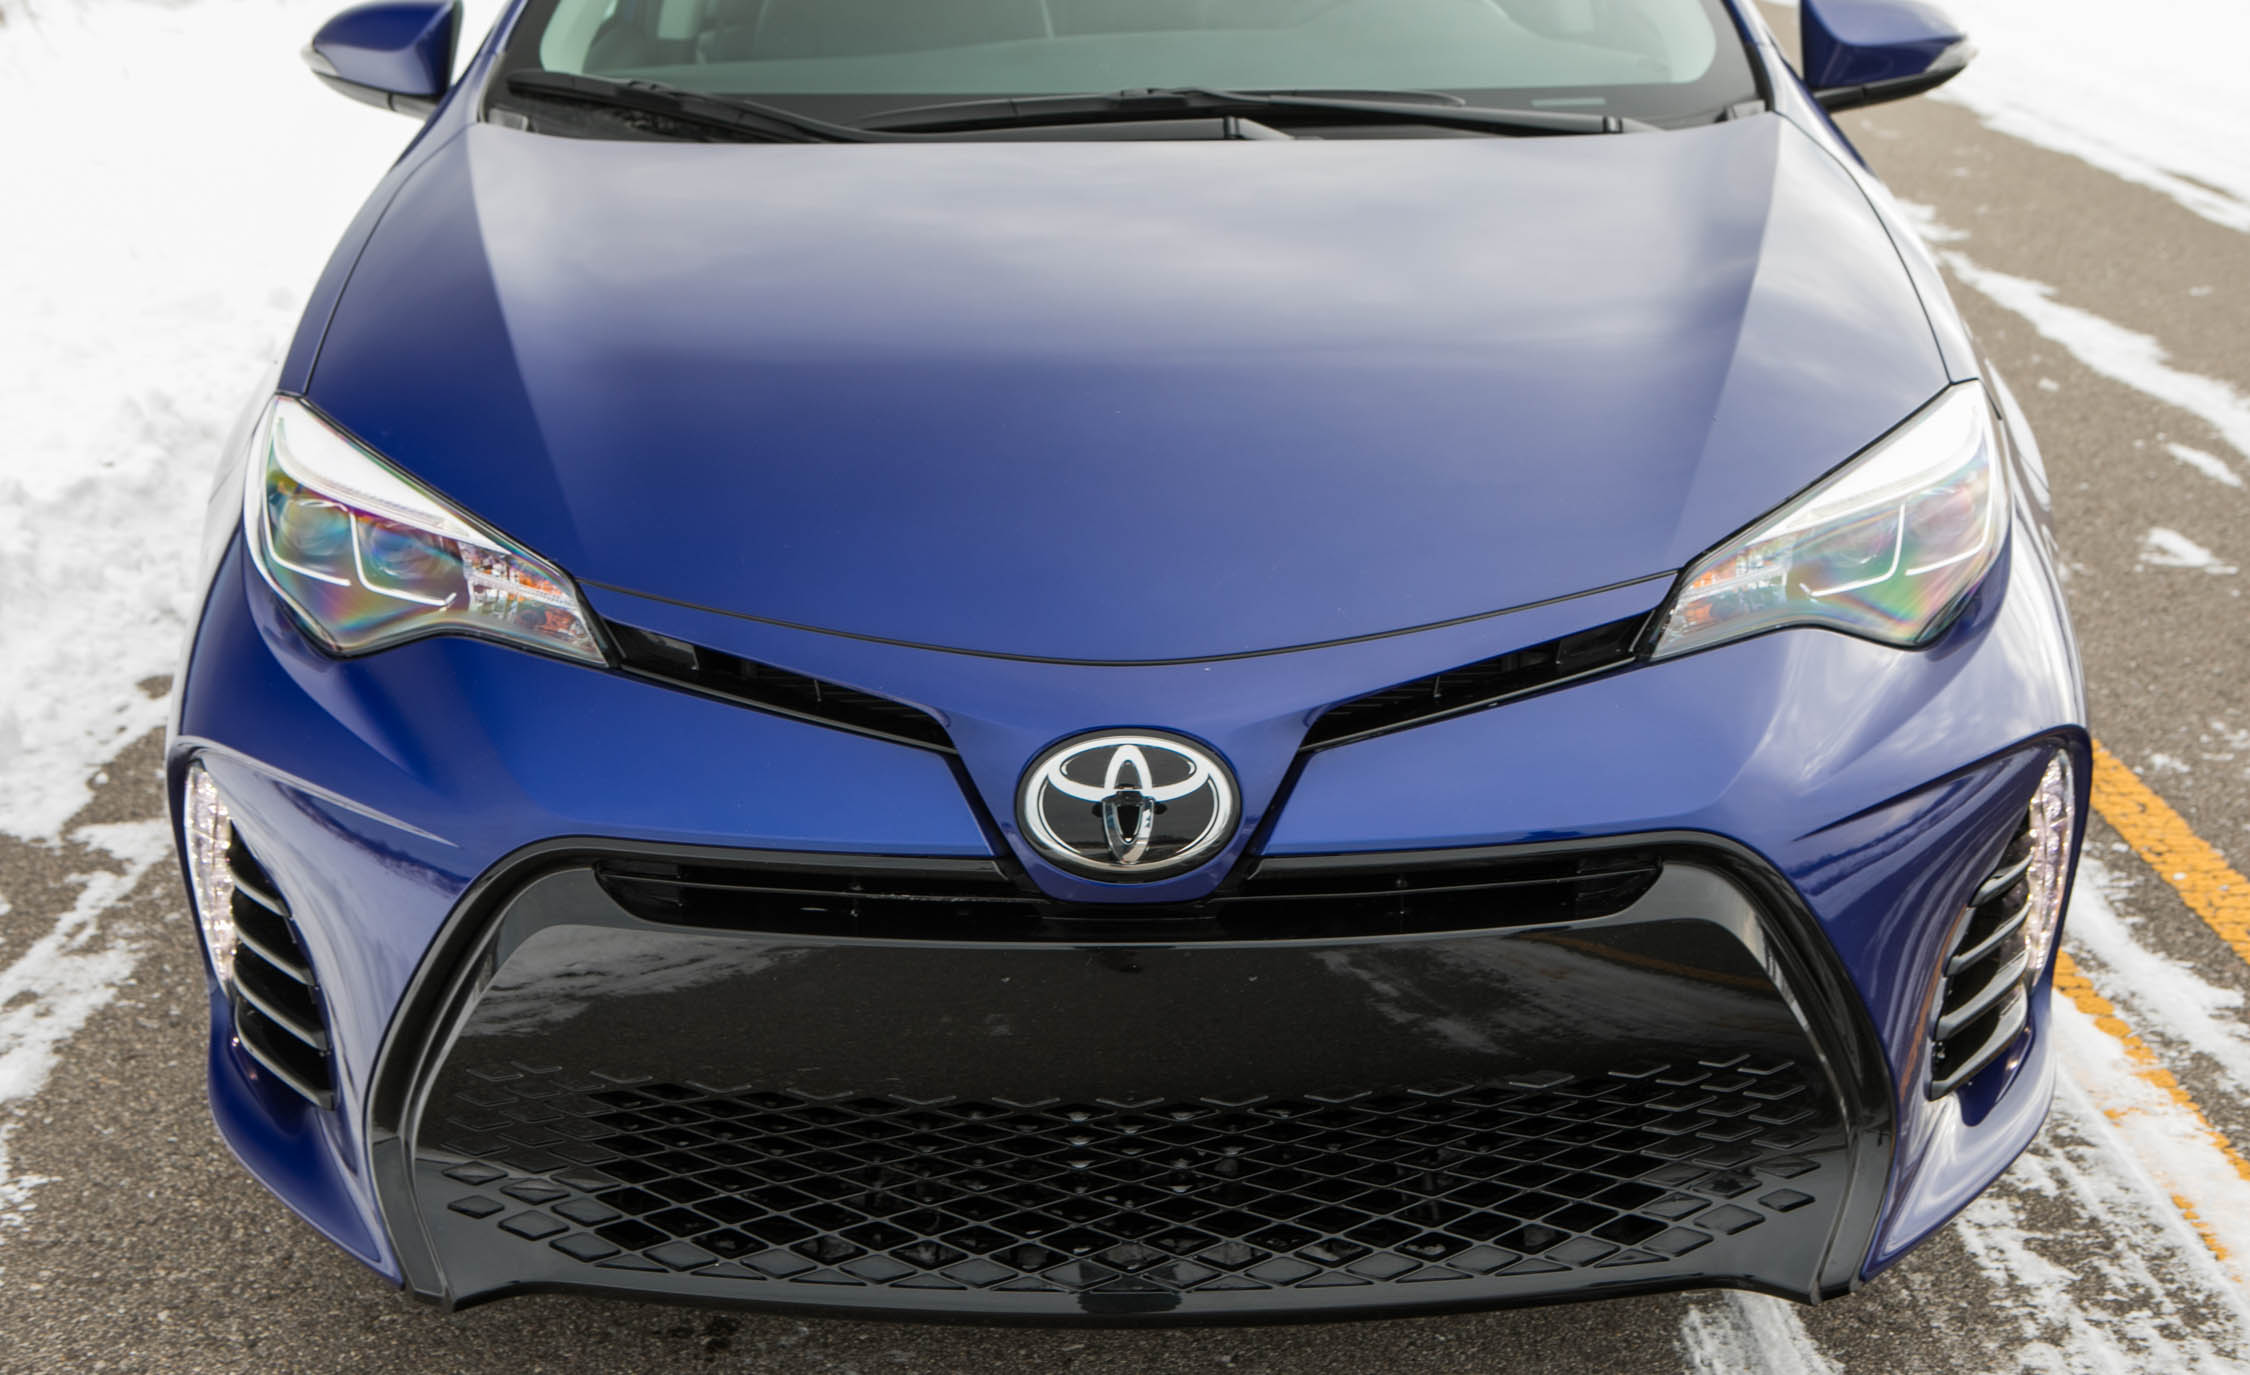 2017 Toyota Corolla XSE Exterior View Grille (Photo 43 of 75)